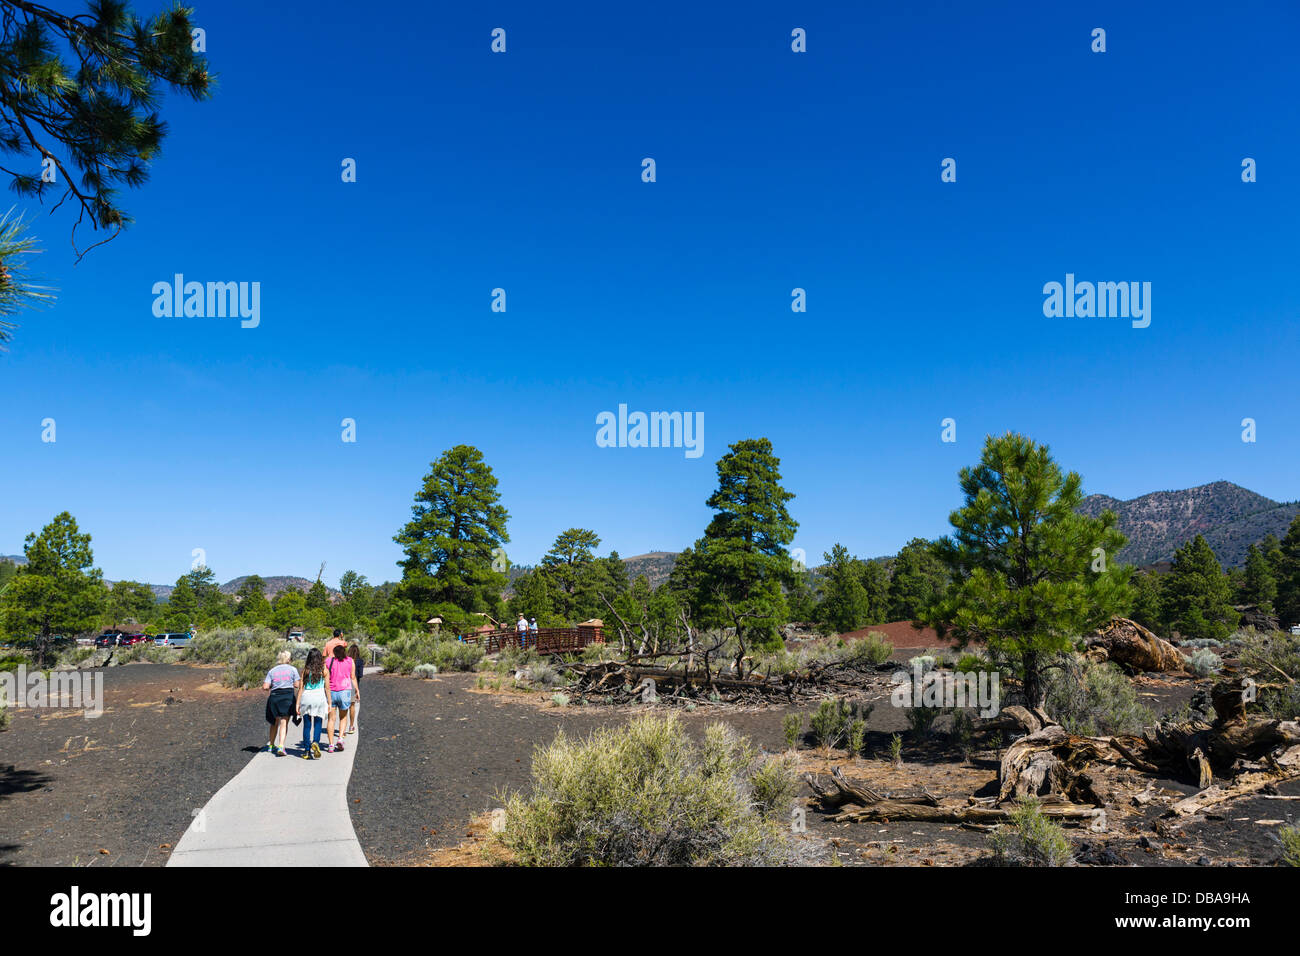 Tourists on the Lava Flow Trail at Sunset Crater Volcano National Monument, near Flagstaff, Arizona, USA - Stock Image